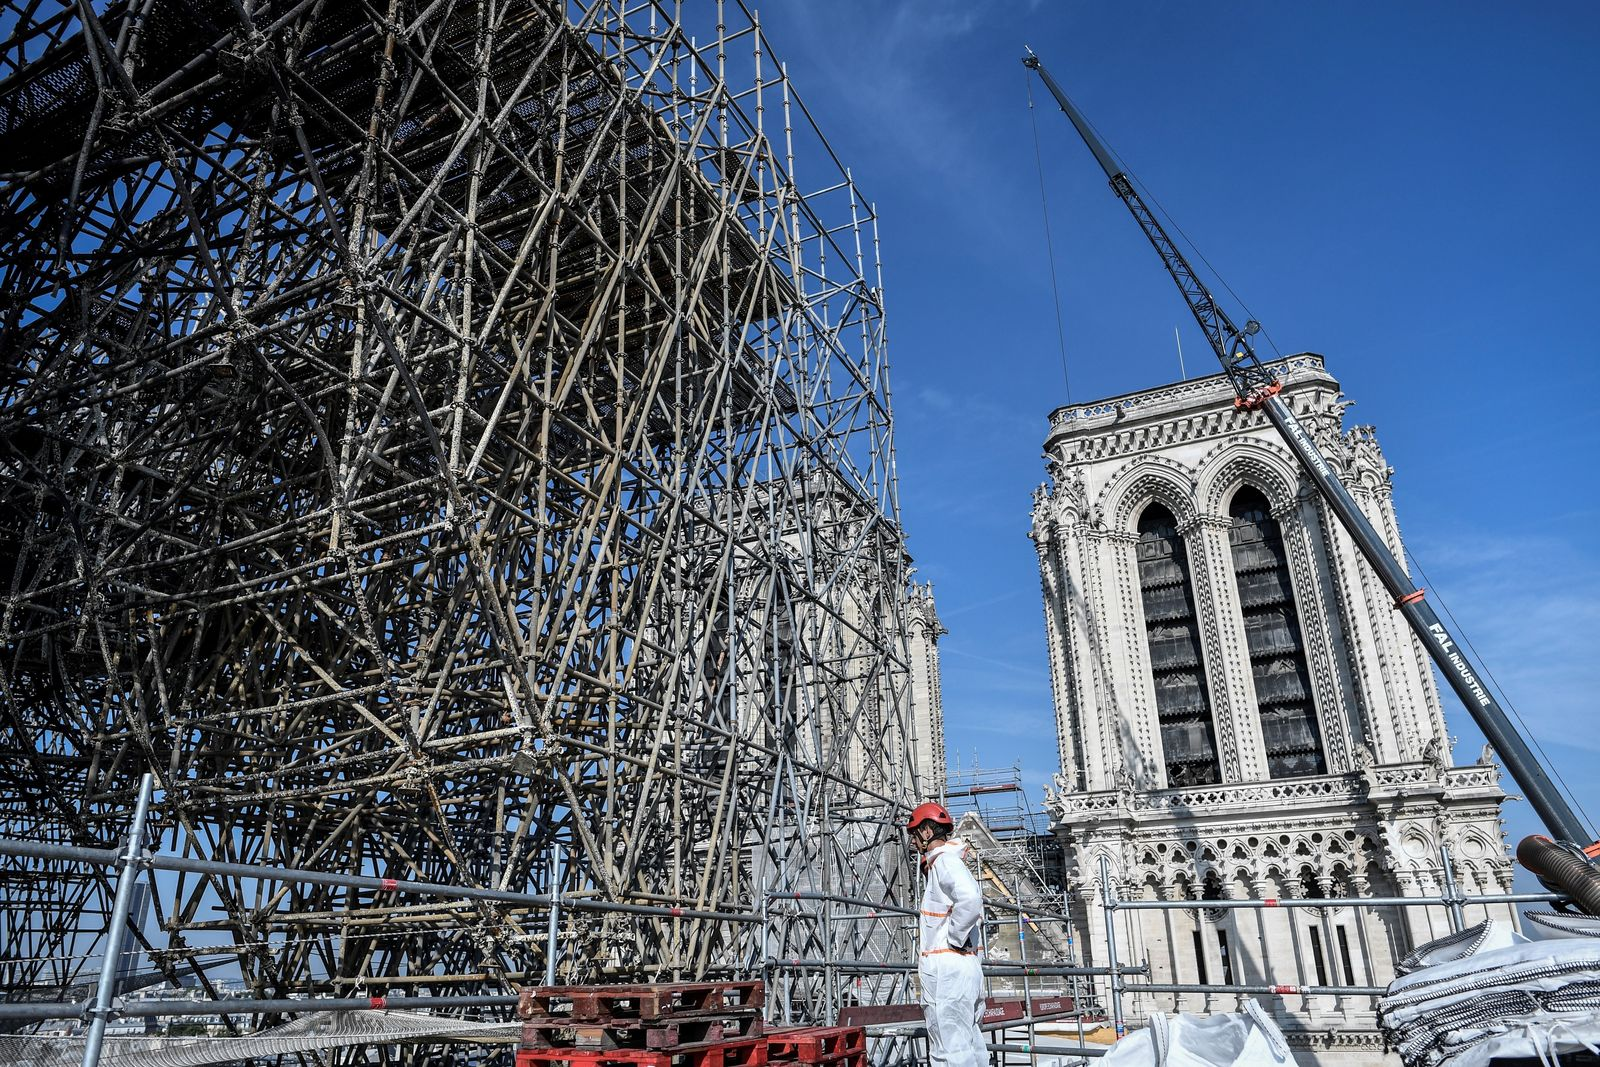 Scaffolding is seen during preliminary work on top of the Notre-Dame de Paris Cathedral, Wednesday, July 17, 2019 in Paris. (Stephane de Sakutin/Pool via AP)